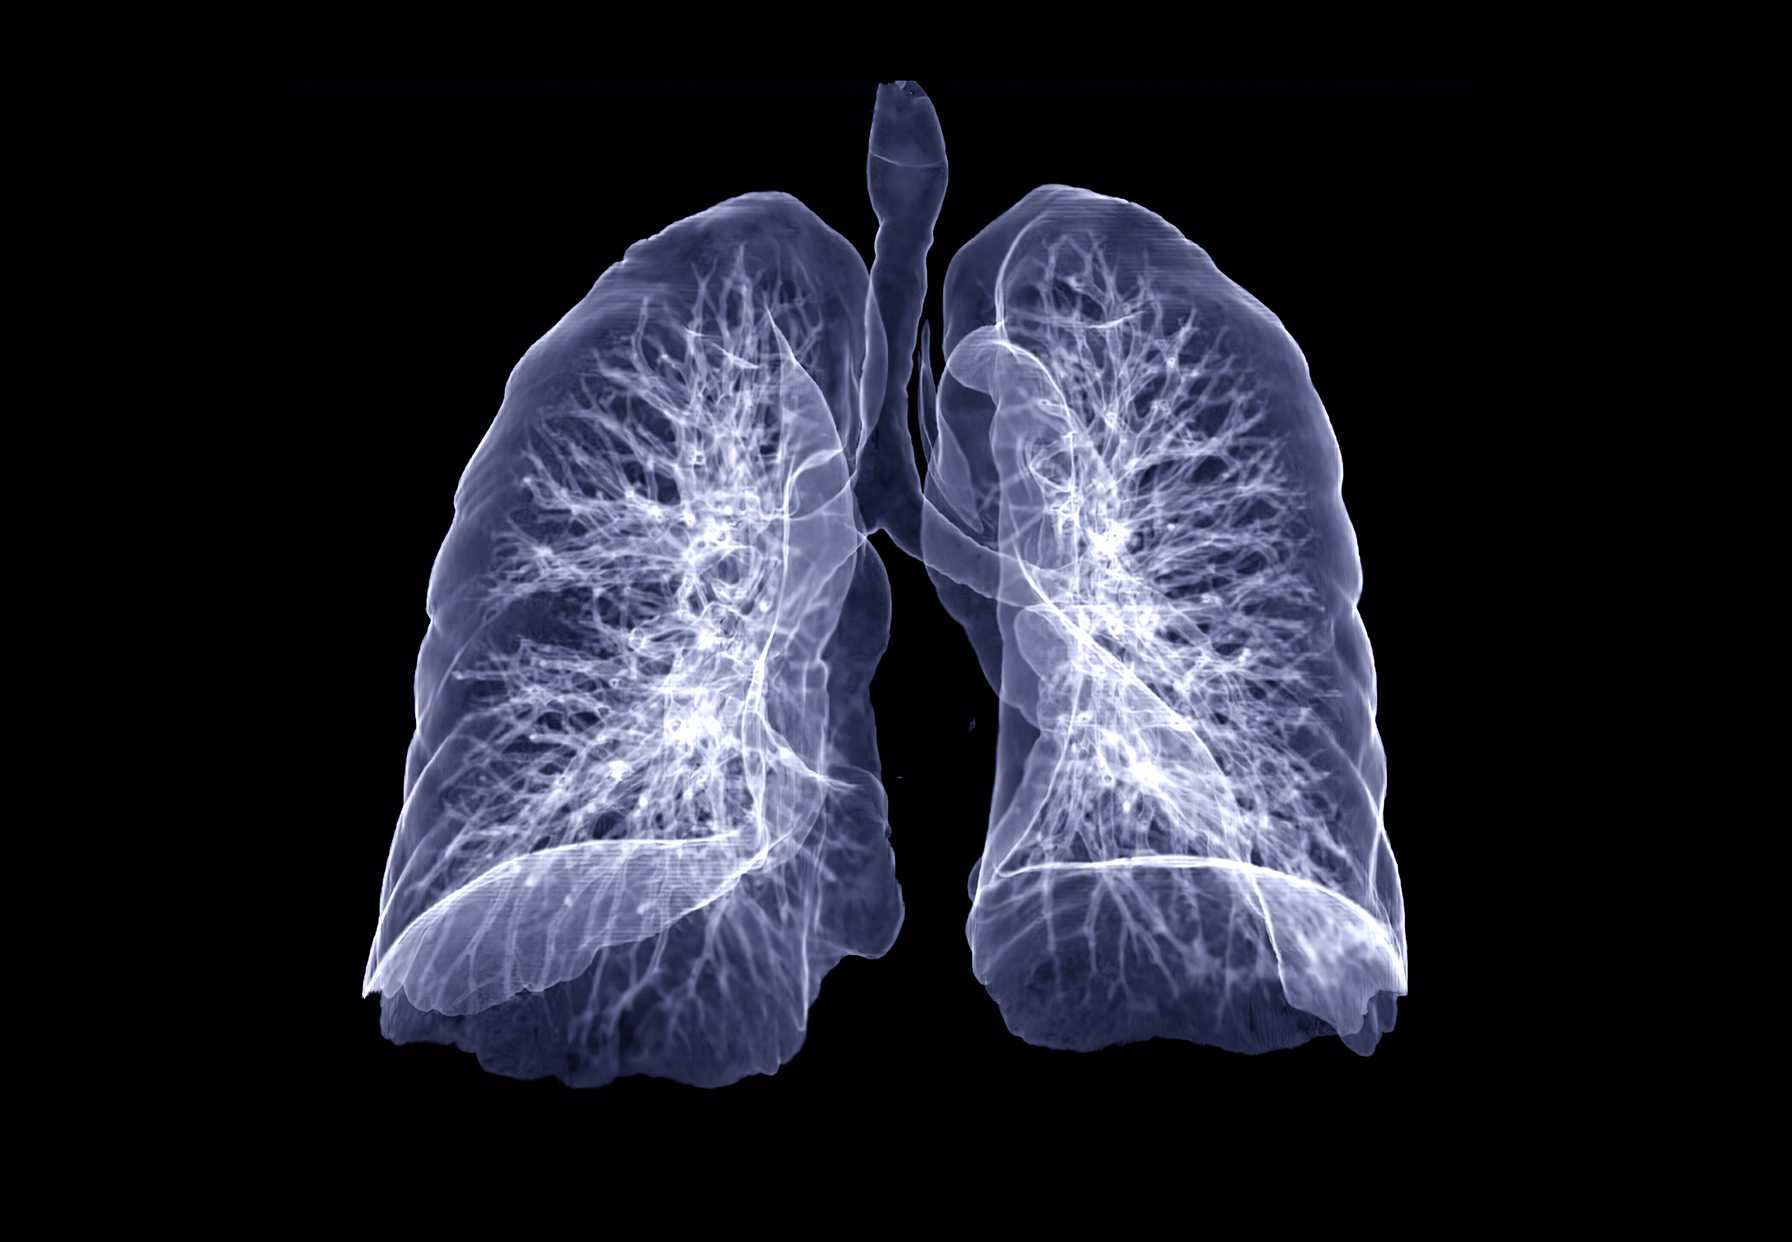 Diagnostic Evaluation of Pulmonary Embolism During the COVID-19 Pandemic